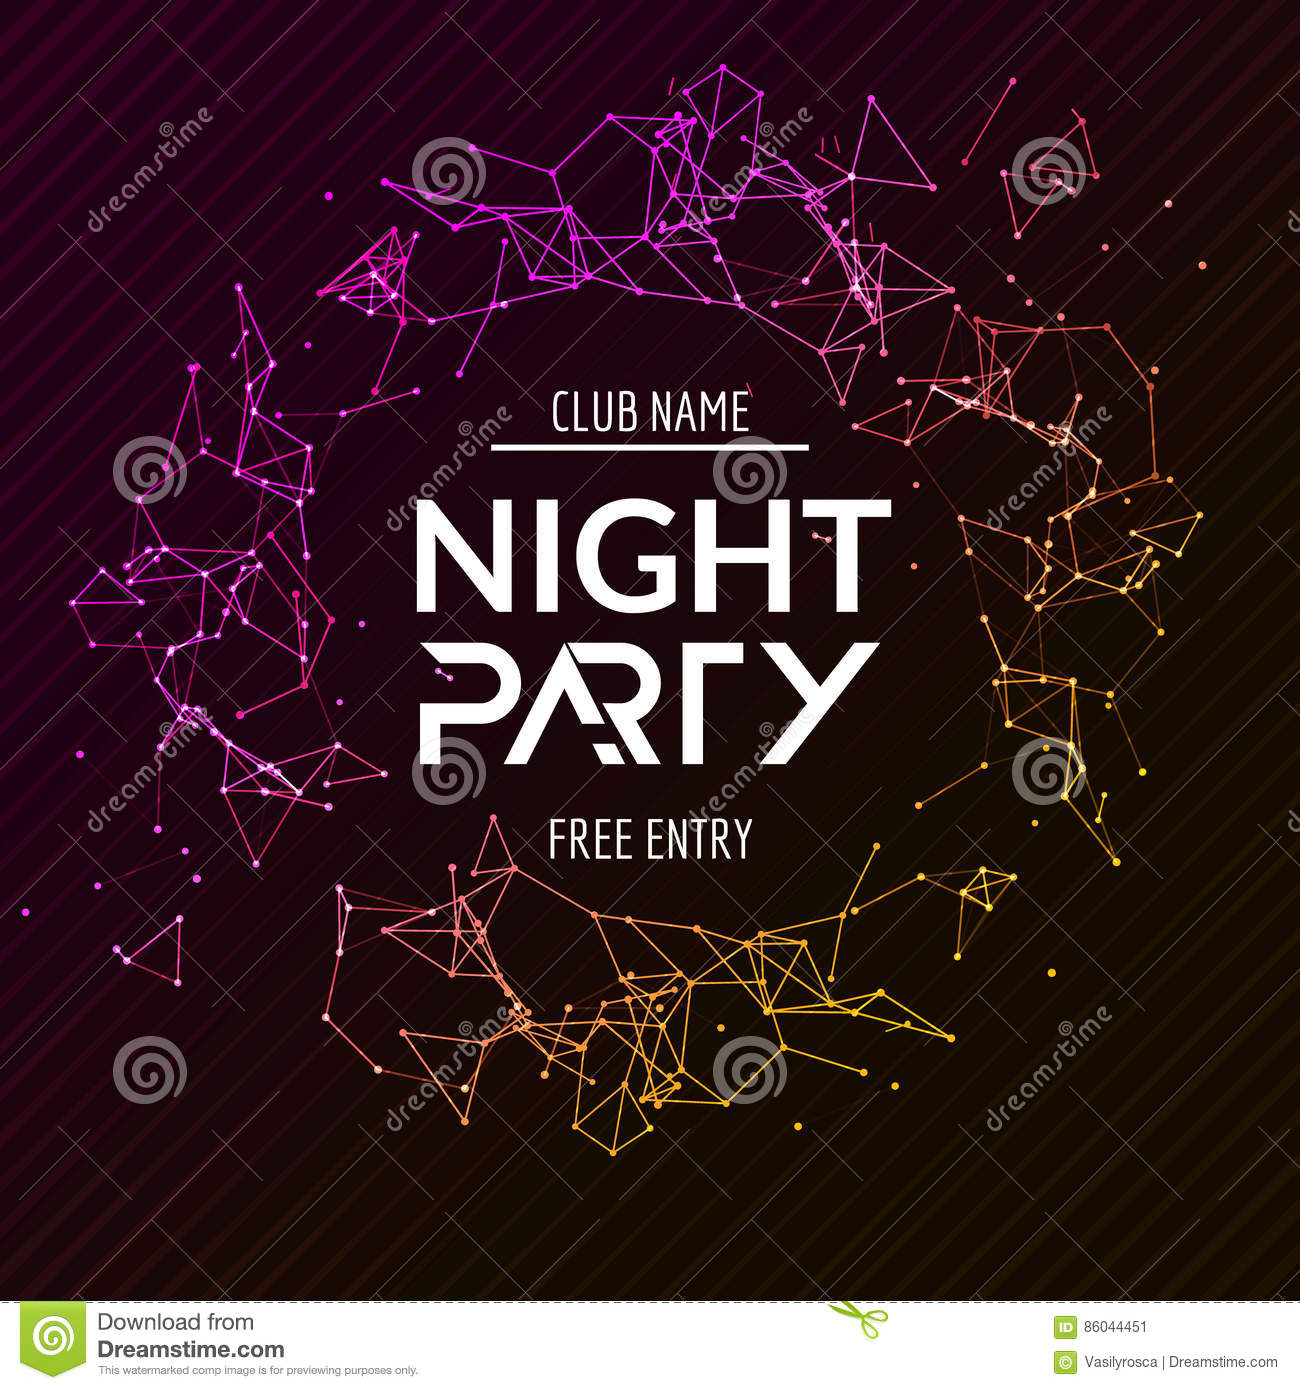 7 Best Philadelphia Flyers Themed Party Images On: Night Party Poster. Shiny Banner Club Disco. Dj Dance